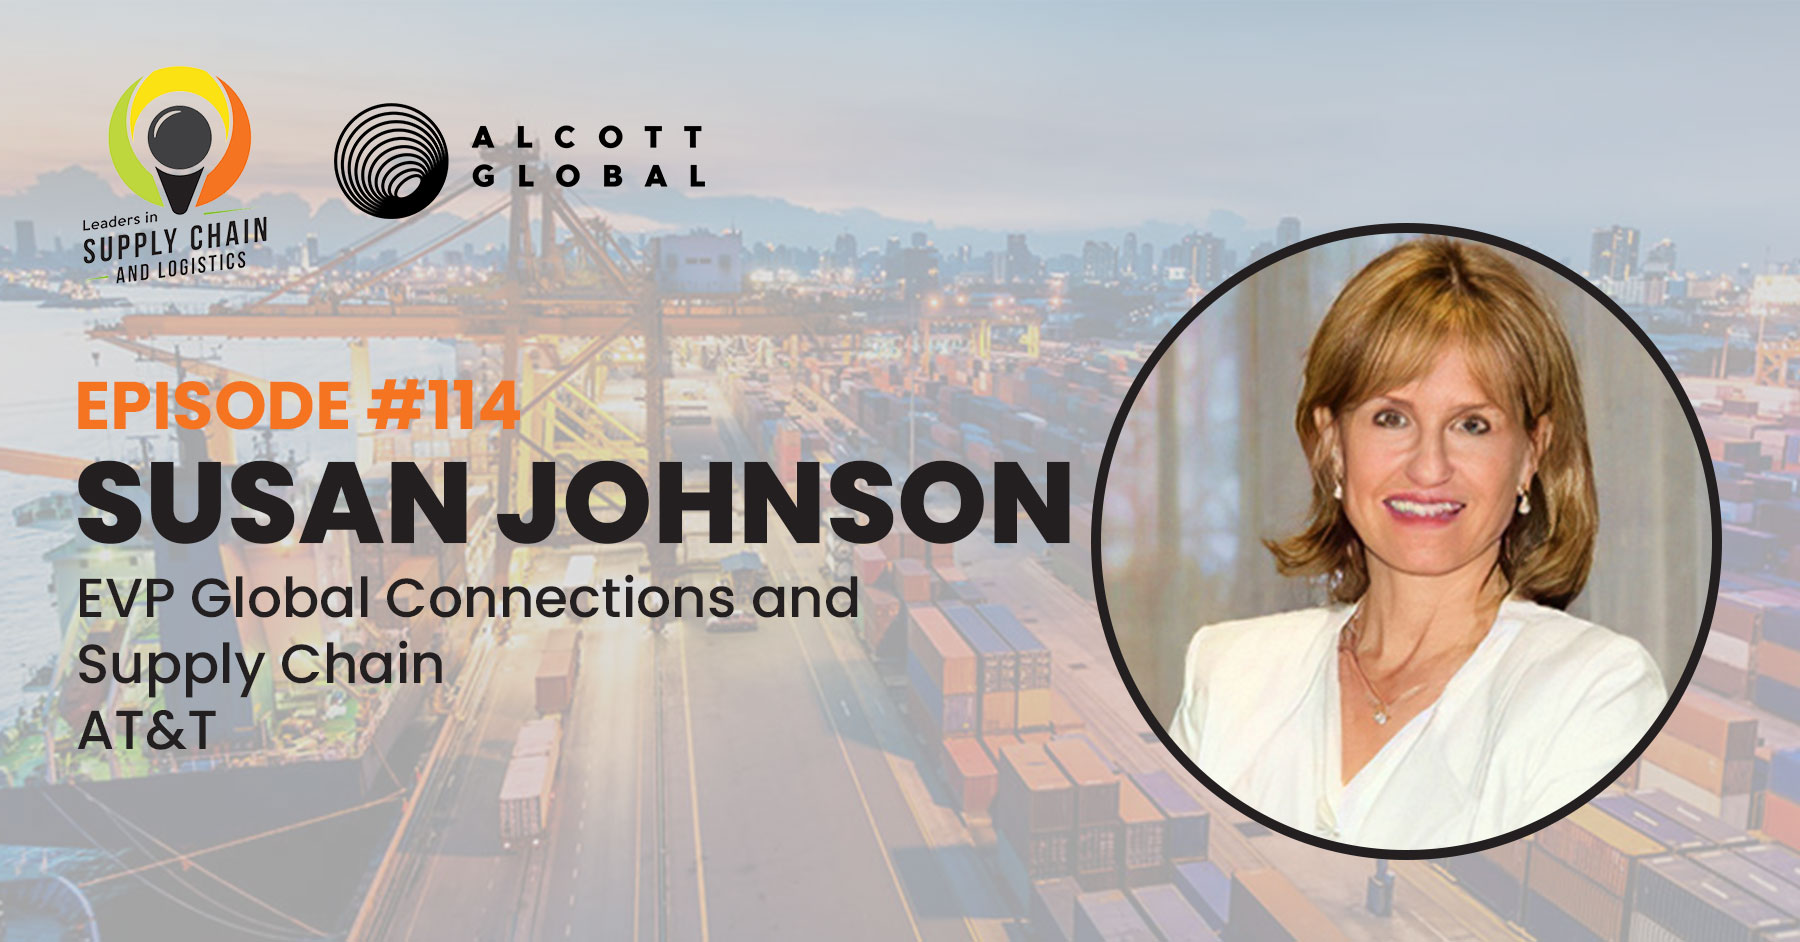 #114: Susan Johnson, EVP Global Connections and Supply Chain at AT&T Featured Image